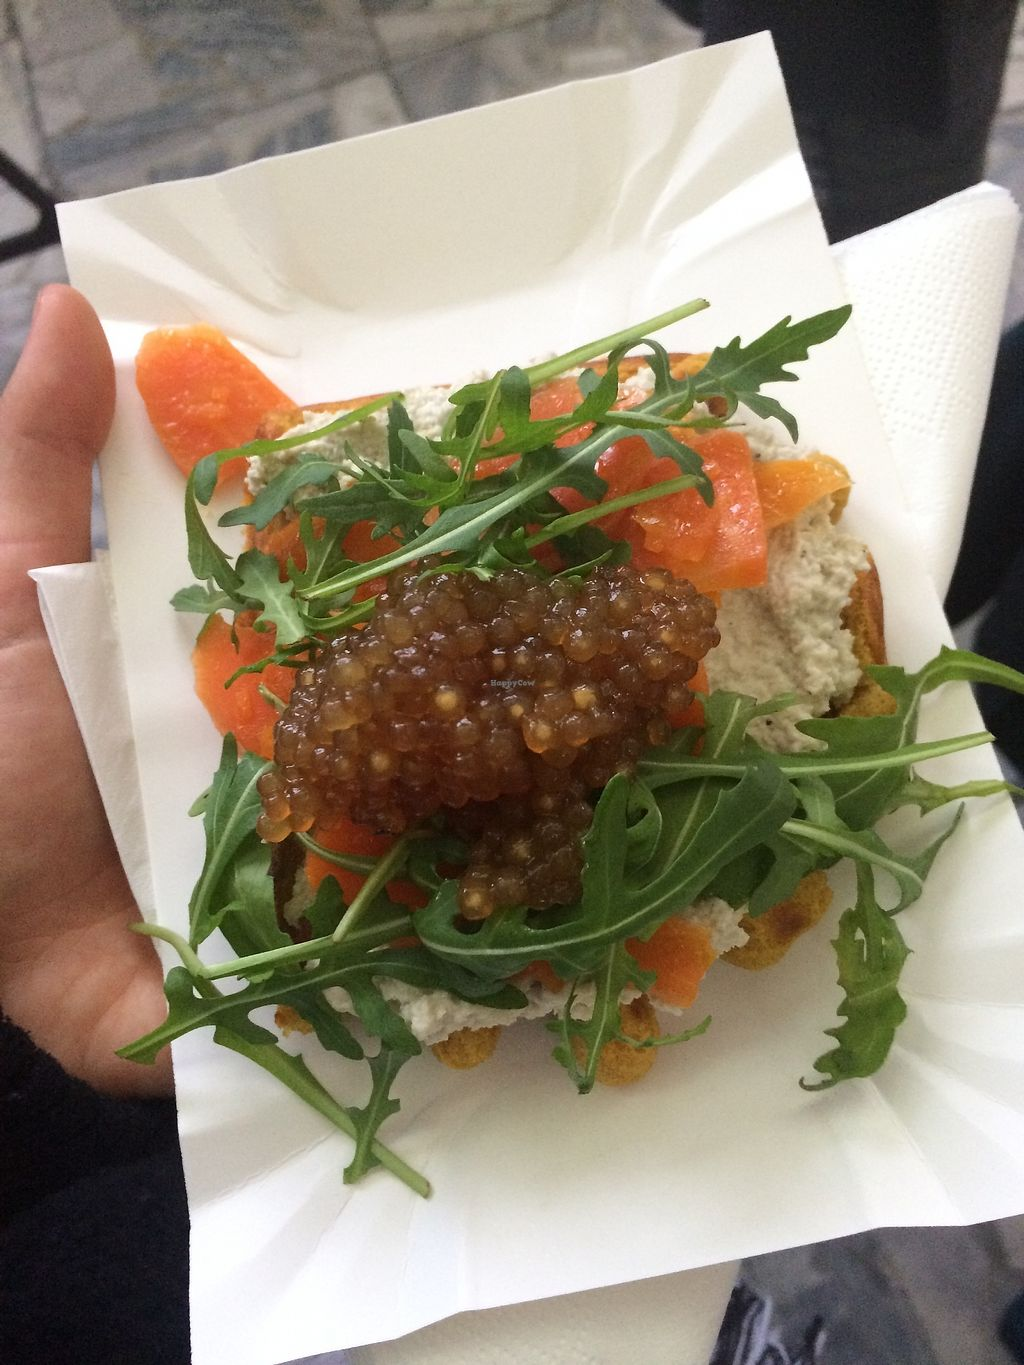 """Photo of Kuchnia PoWolność  by <a href=""""/members/profile/rabarbar"""">rabarbar</a> <br/>waffle with salmon carrot and caviar <br/> January 28, 2018  - <a href='/contact/abuse/image/107094/351834'>Report</a>"""